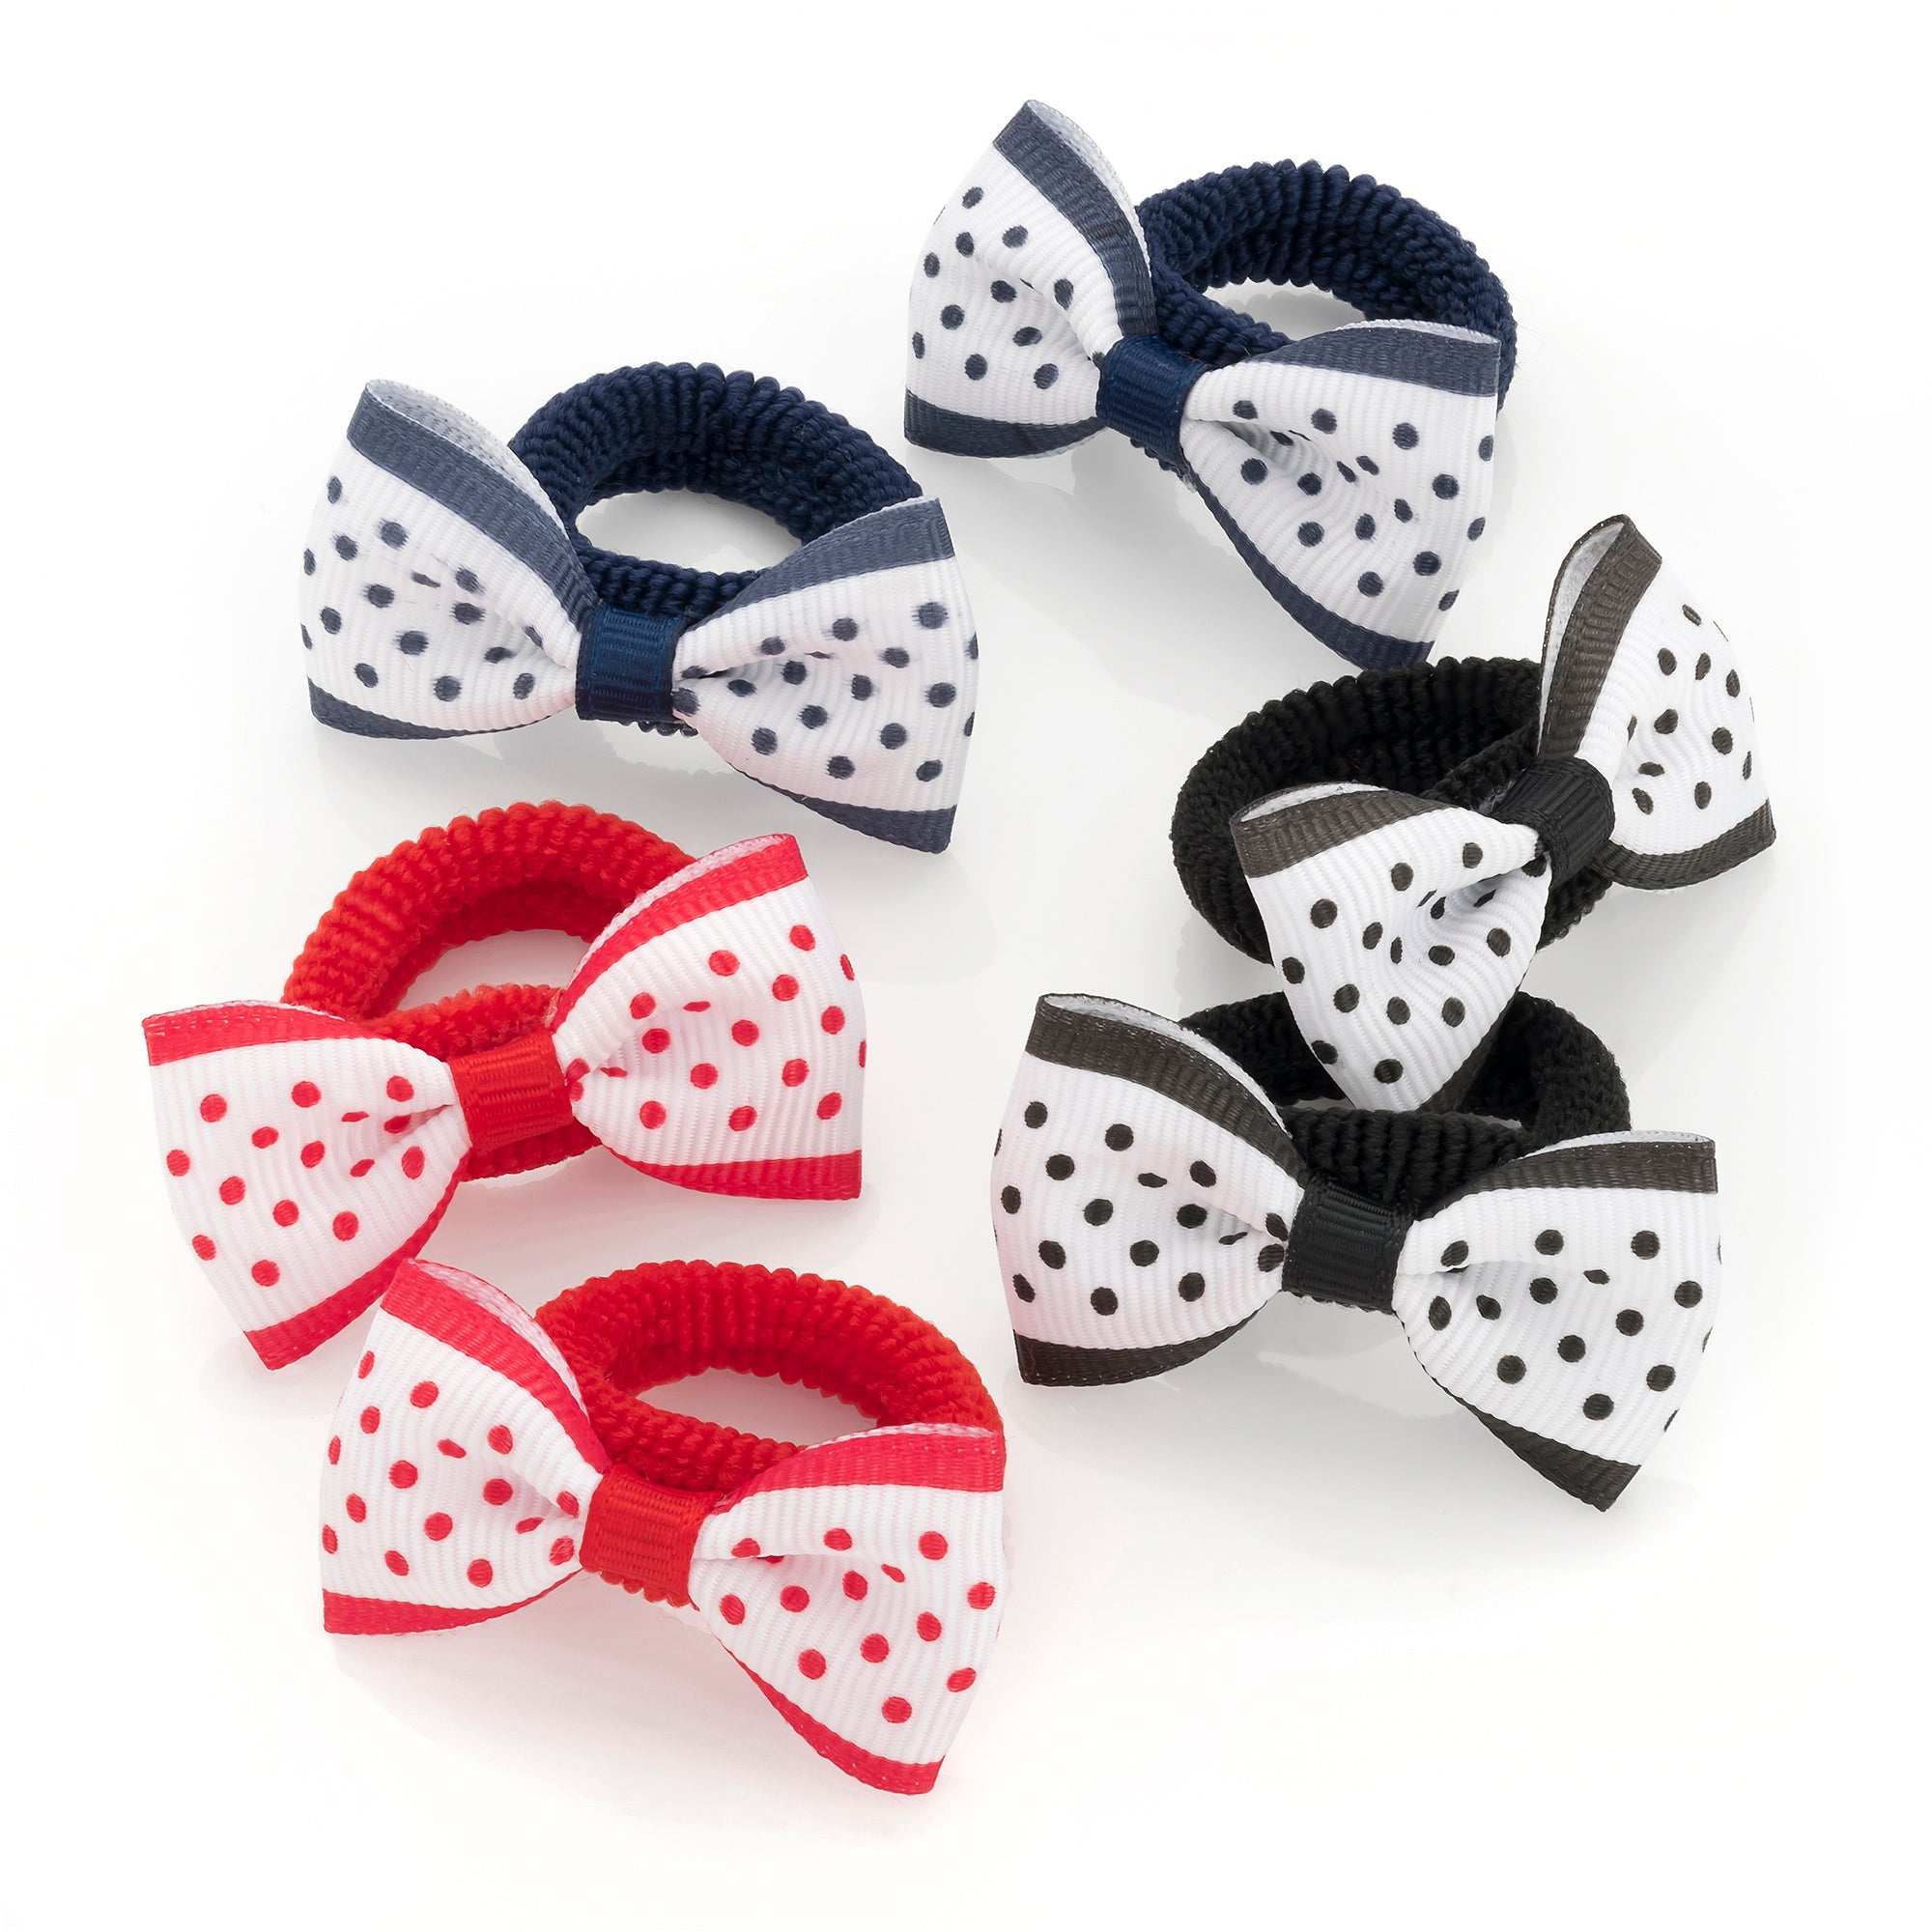 6 Navy, Red And Black Grosgrain Polka Dot Design Bow Hair Ponio Set 5cm bow